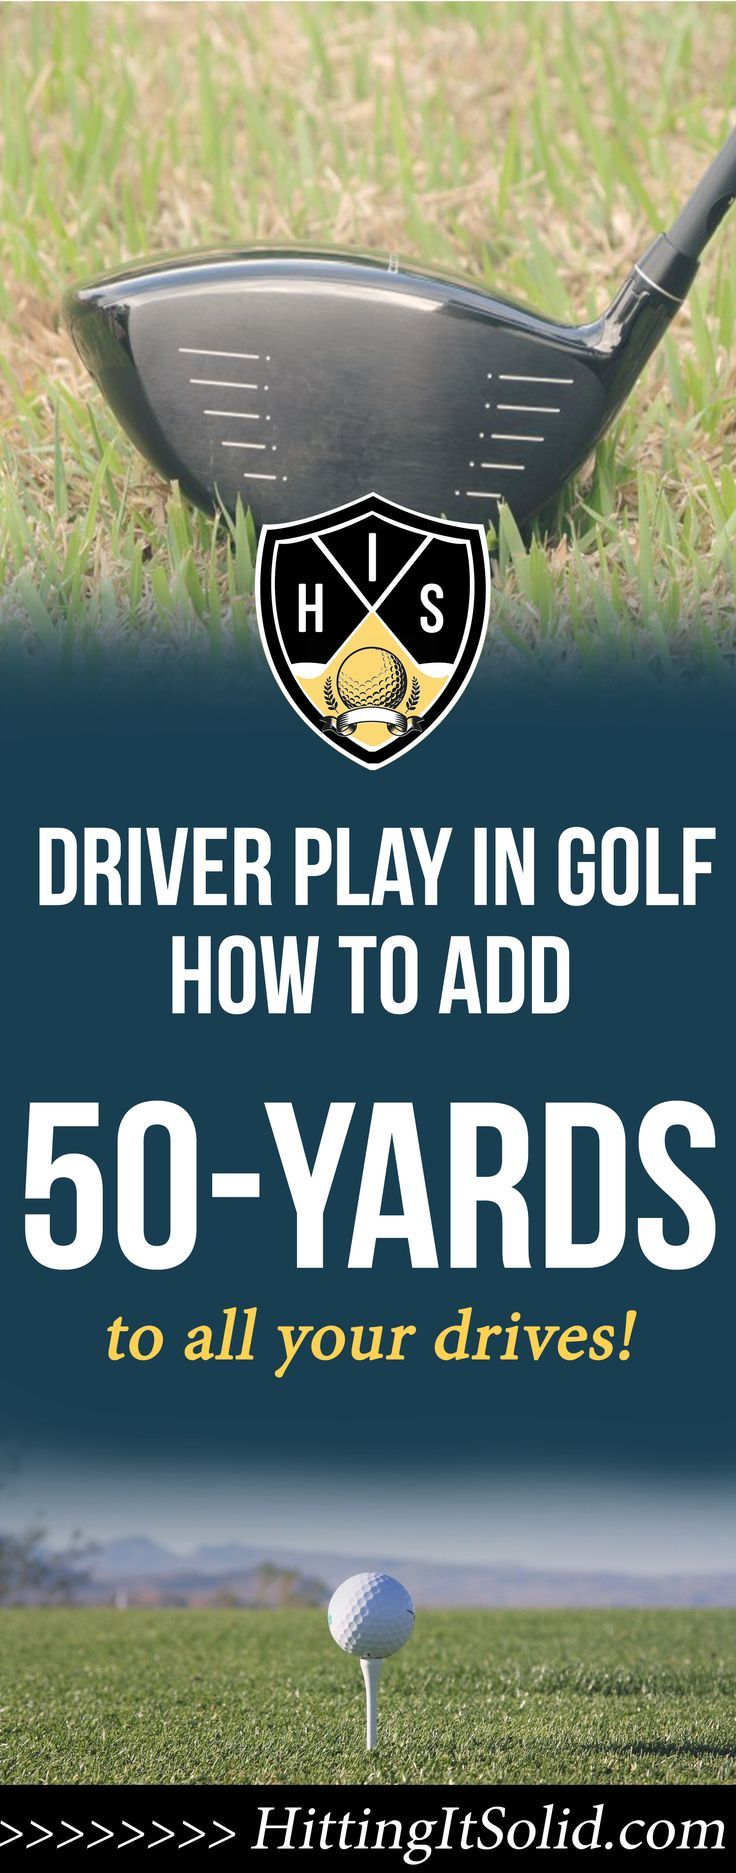 Driver play in golf how to add 50yards to your drives